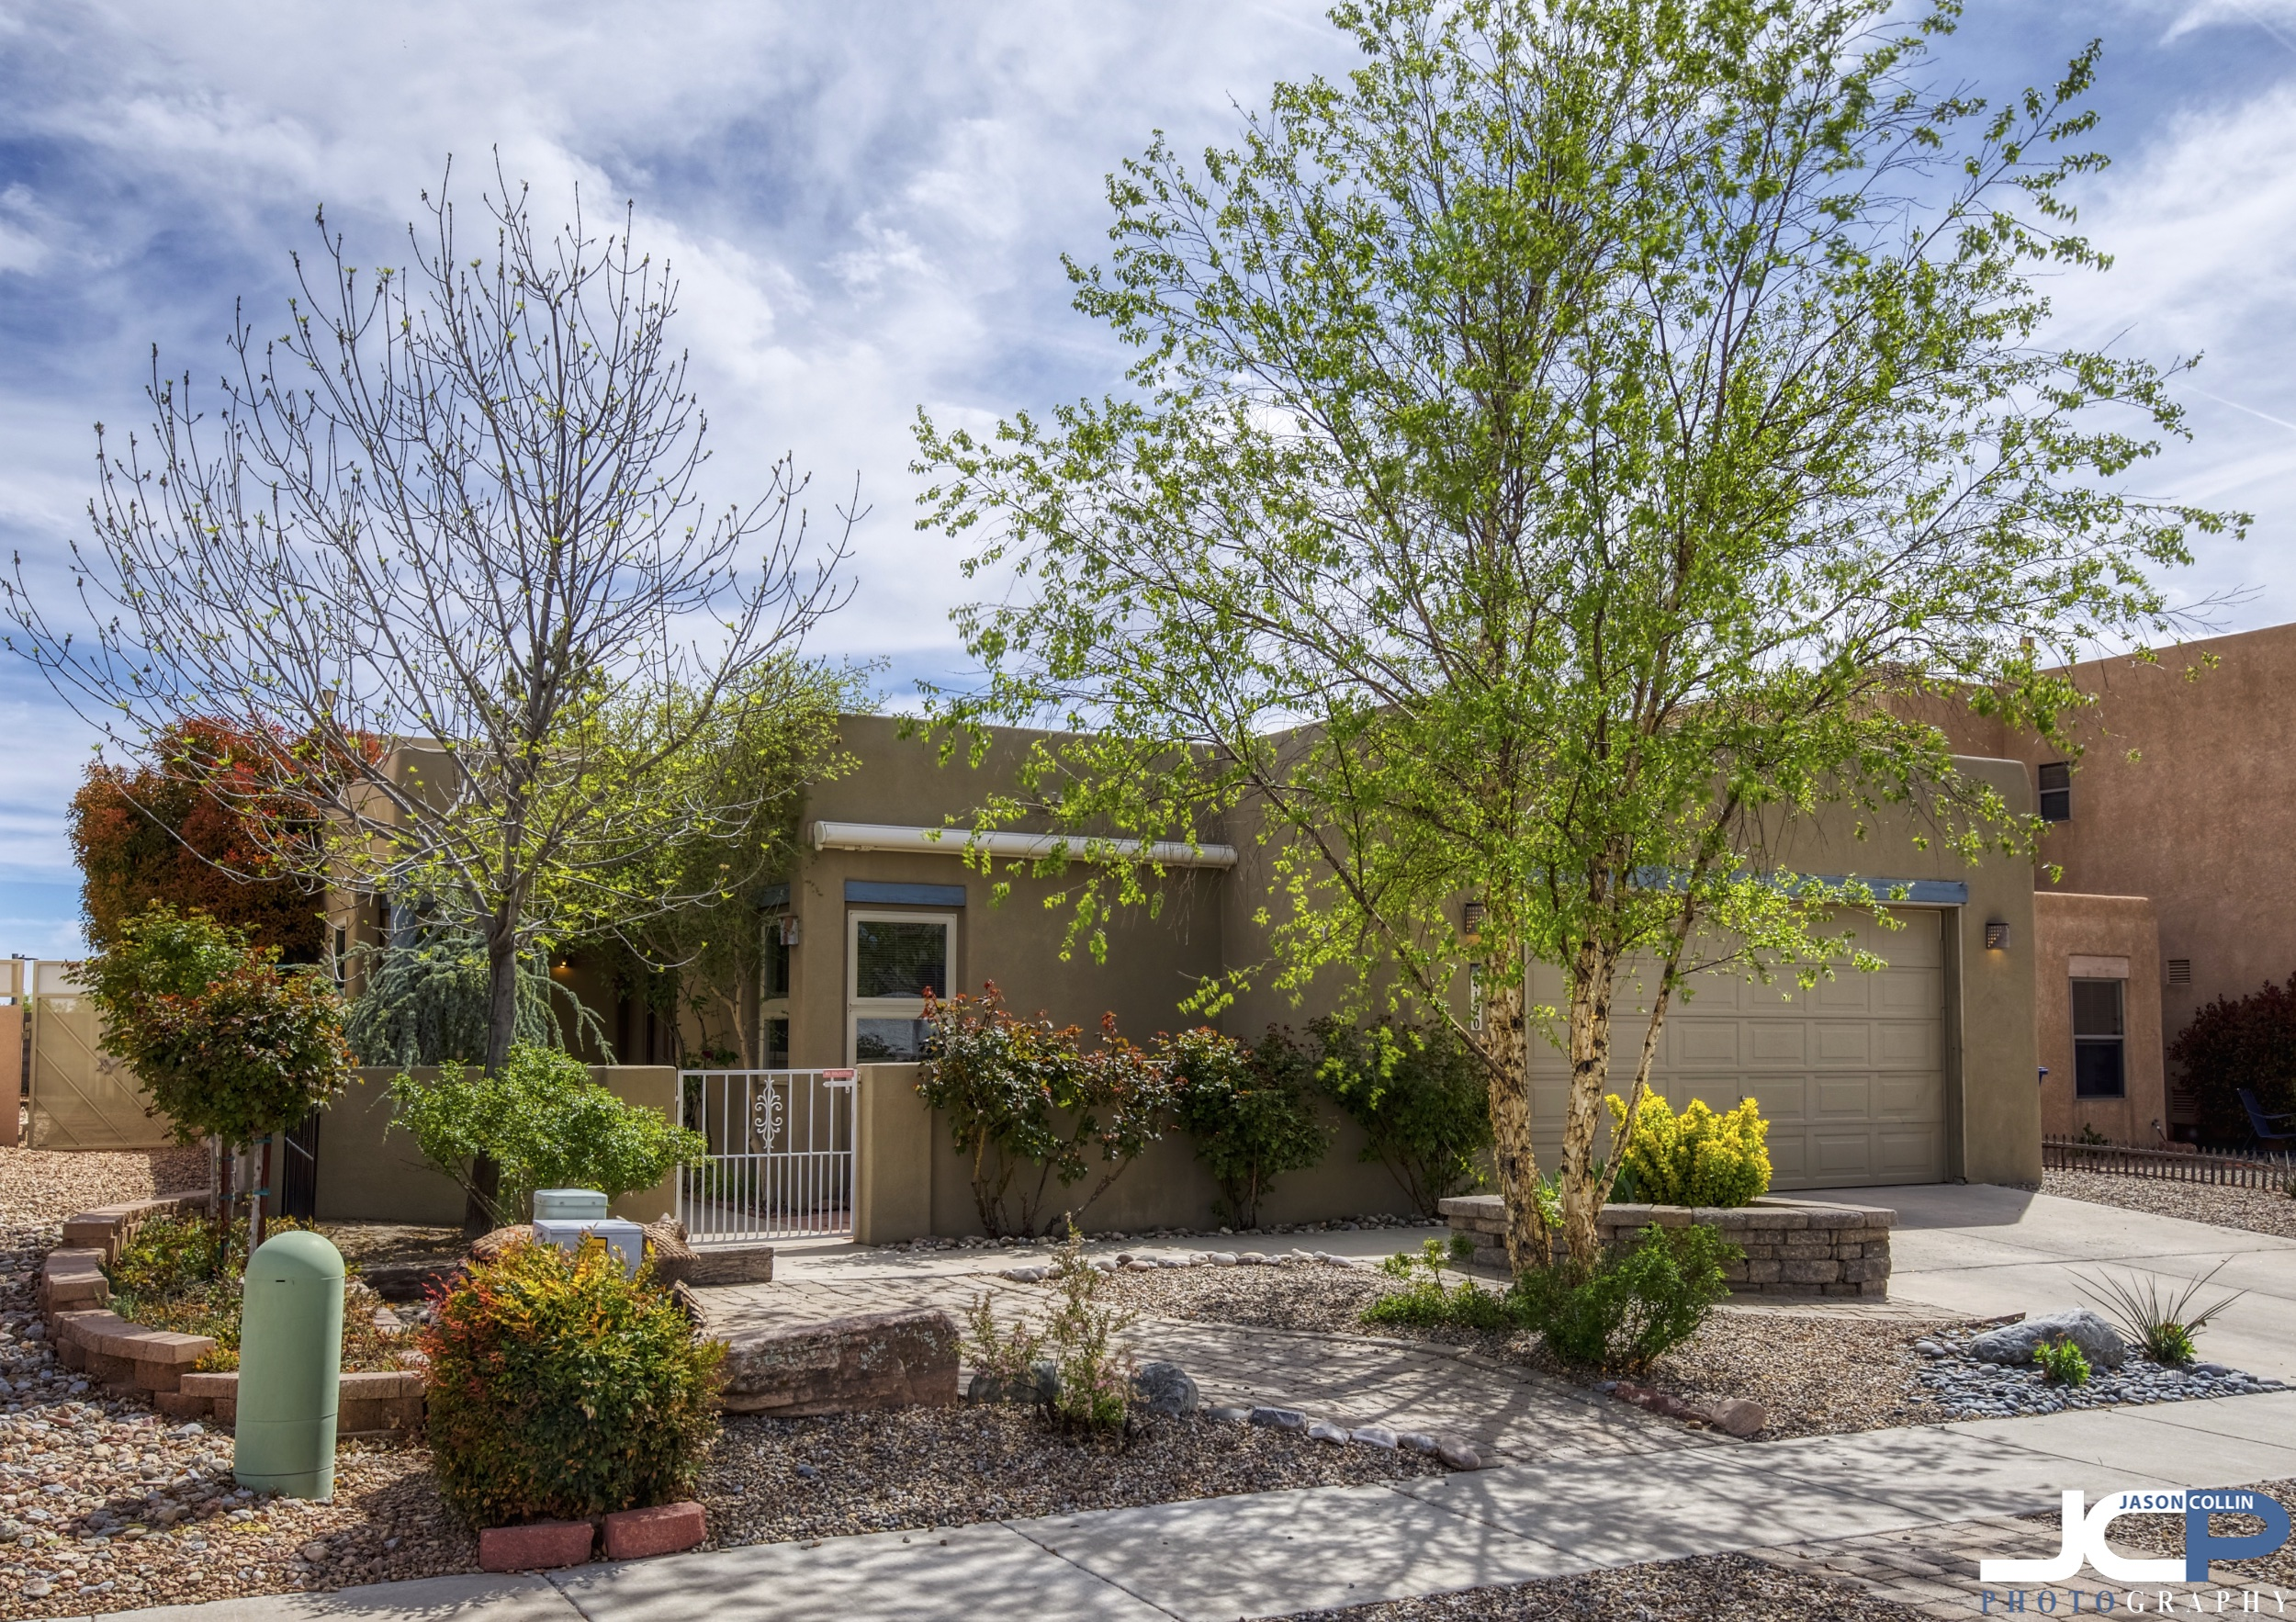 Realistic HDR used for Rio Rancho real estate photography exteriors